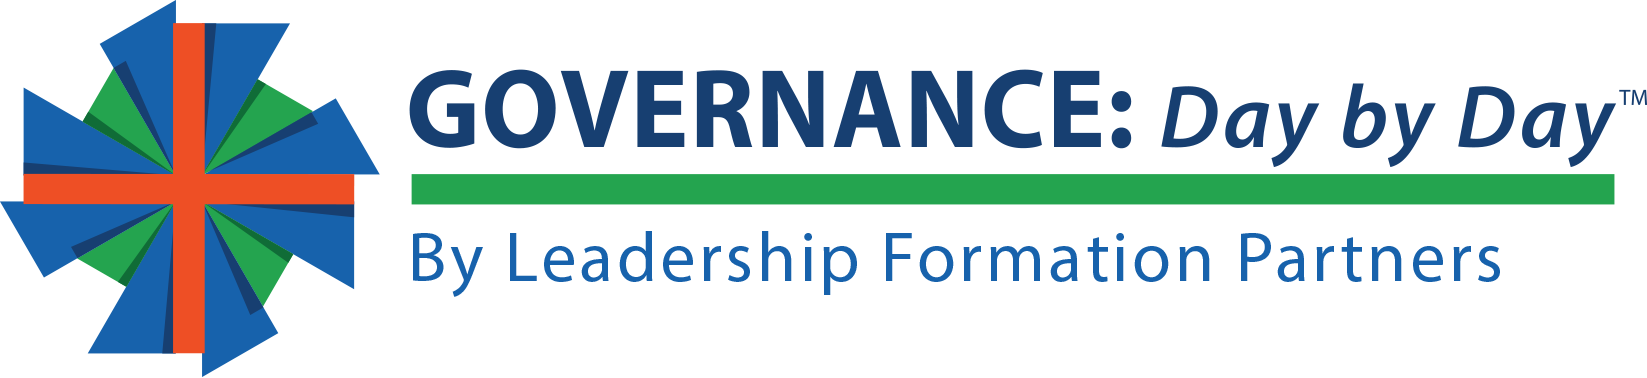 Governance: Day by Day logo